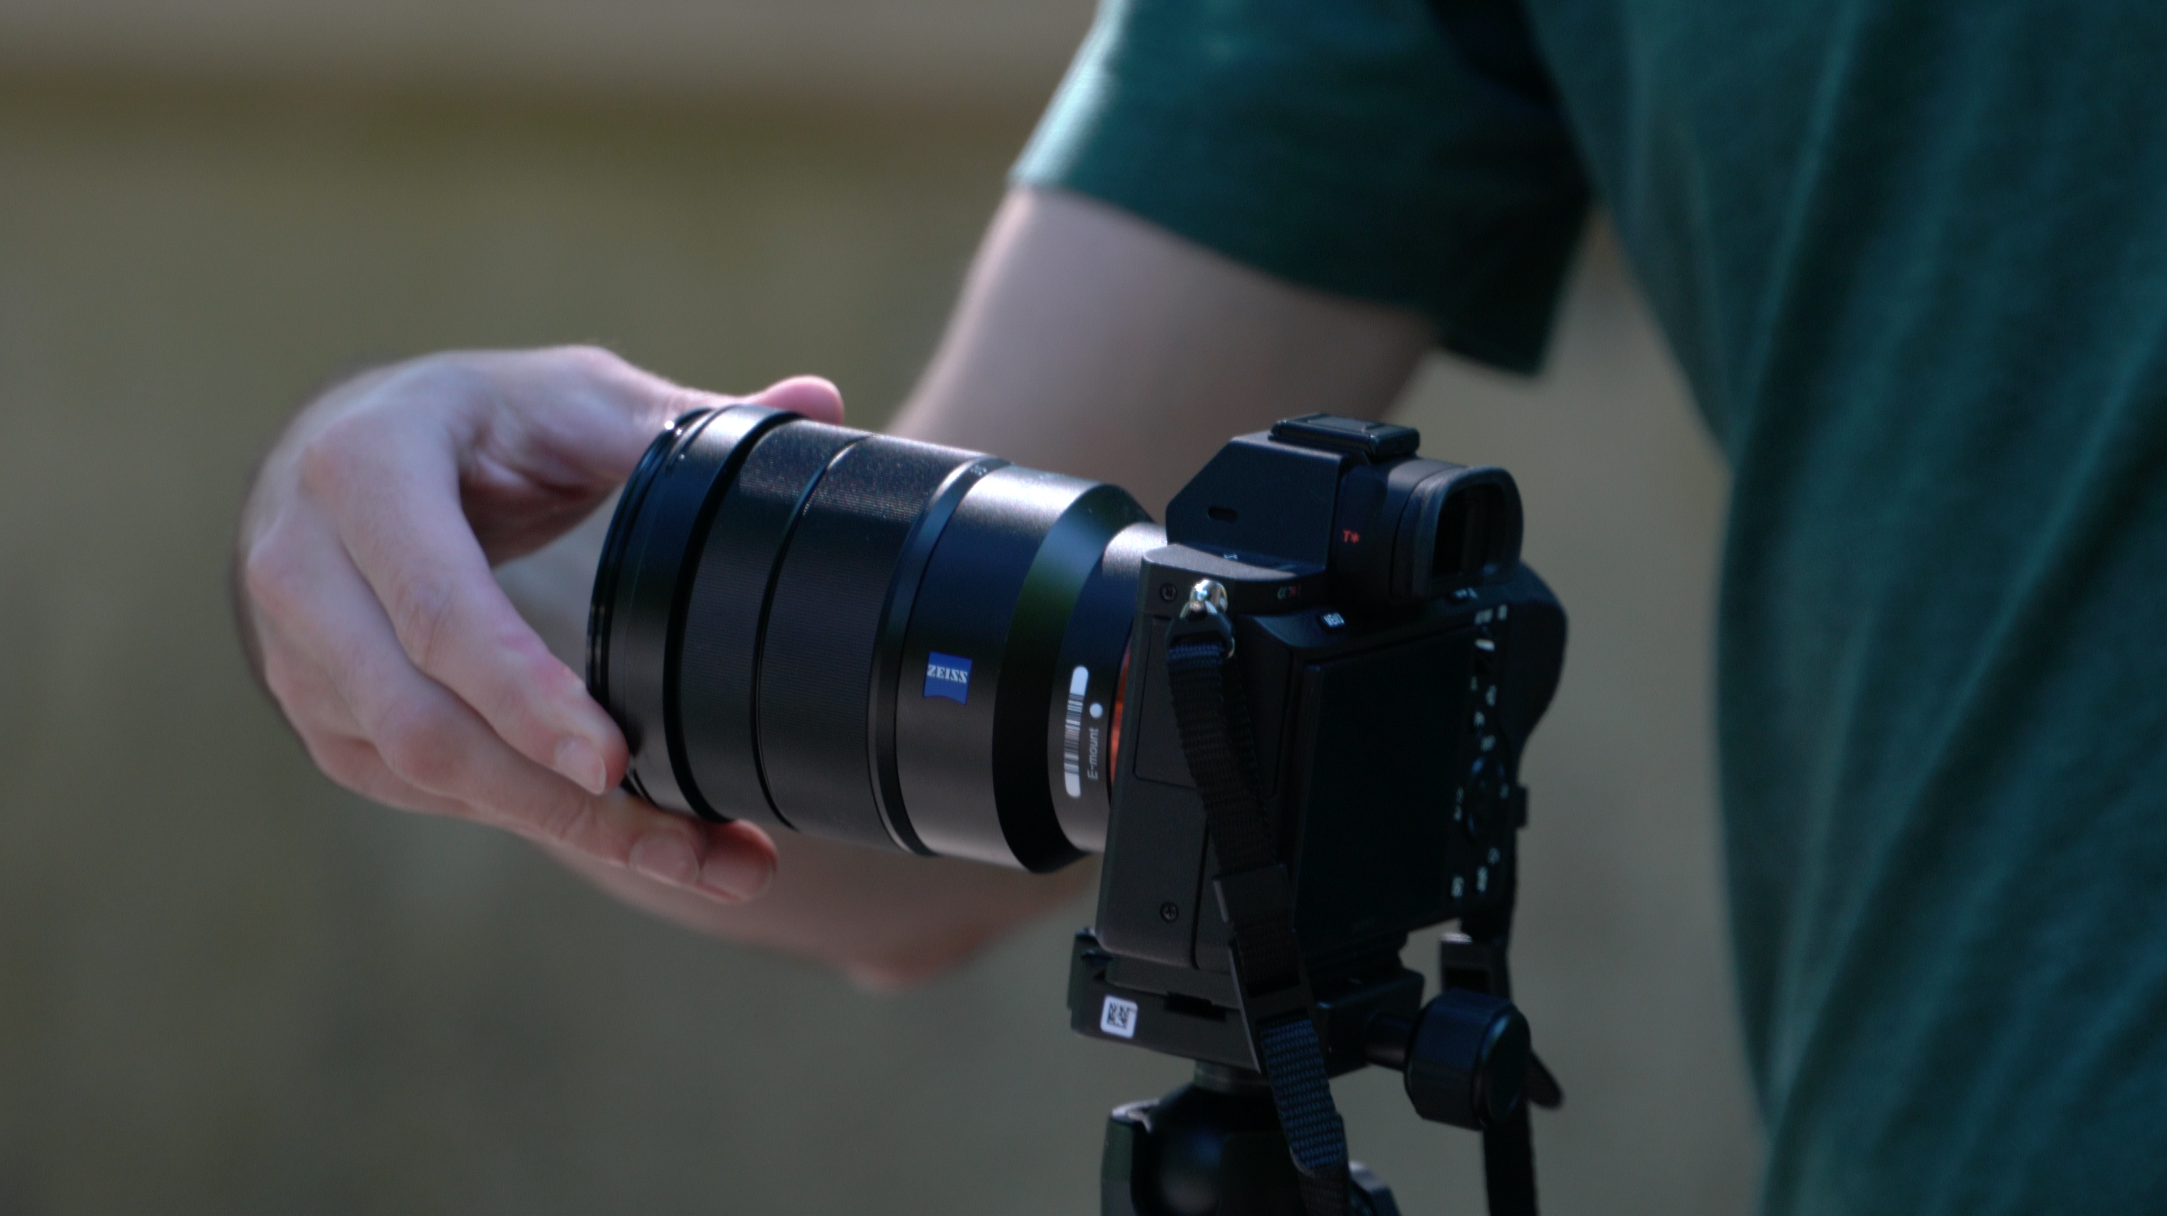 Review: The a7R II is the Best Camera Sony Has Ever Made